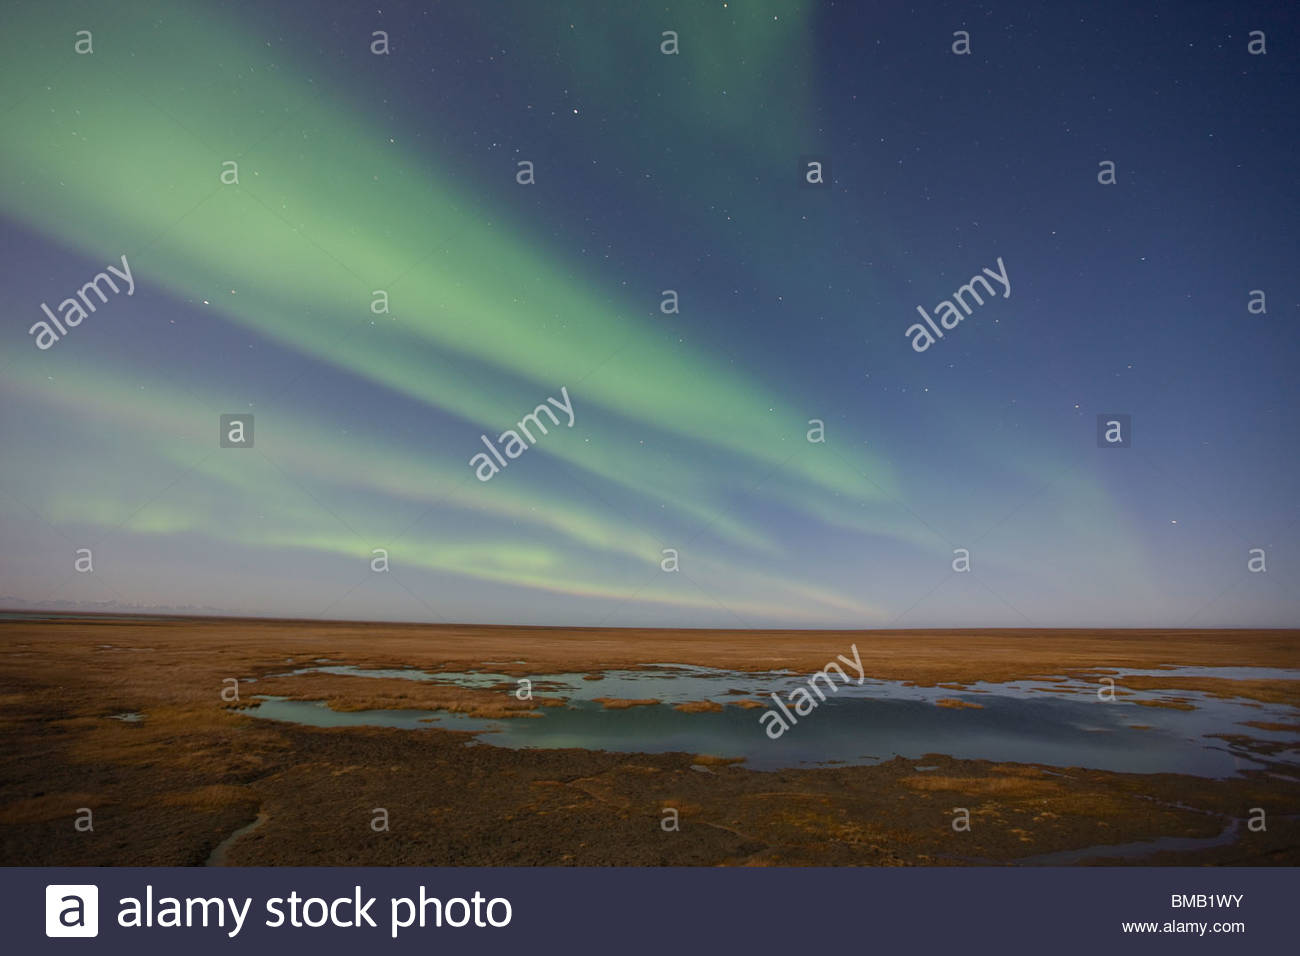 Curtains of colored northern lights (aurora borealis) dance in the night sky over the arctic tundra on the coastal - Stock Image